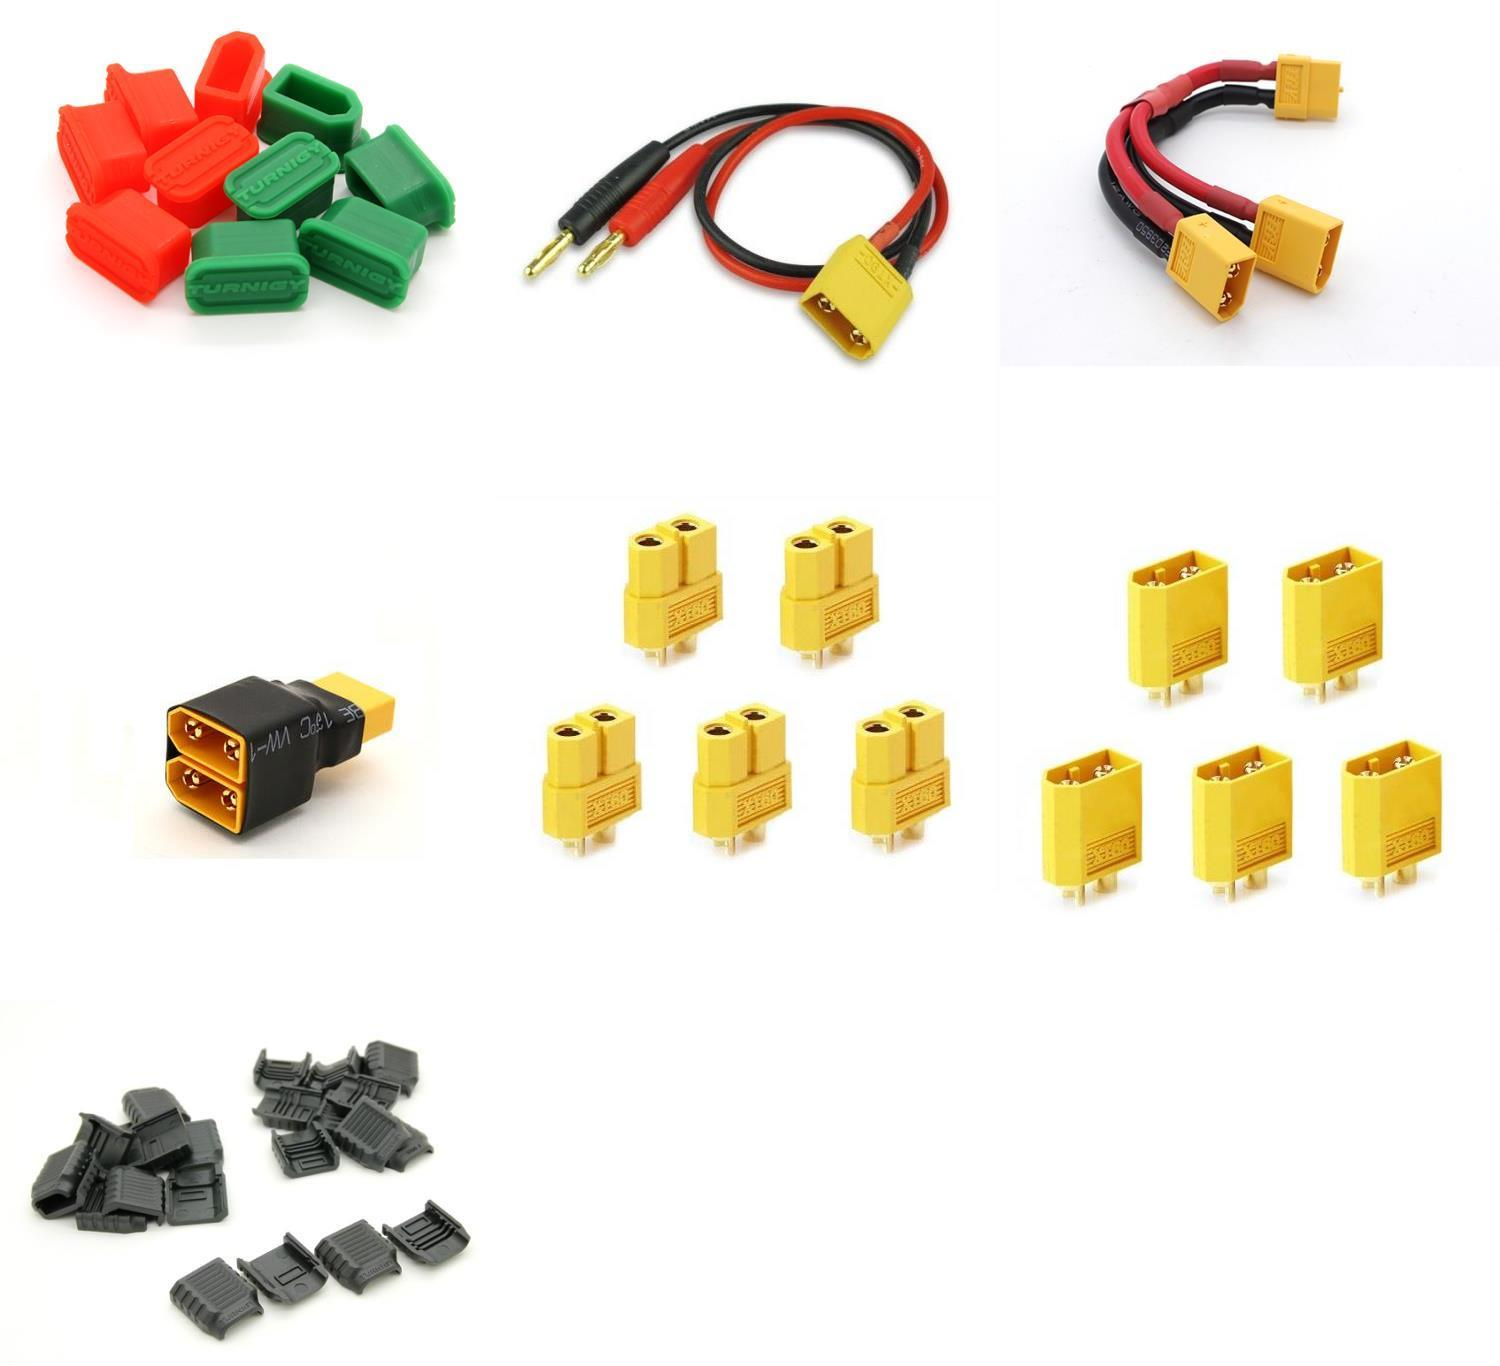 Many Helicopter Quadcopter Airplane Boat Car Controller [QTY: 1] Turnigy BigGrips Connector Adapters XT 60 Male Female (6 sets bag)... by